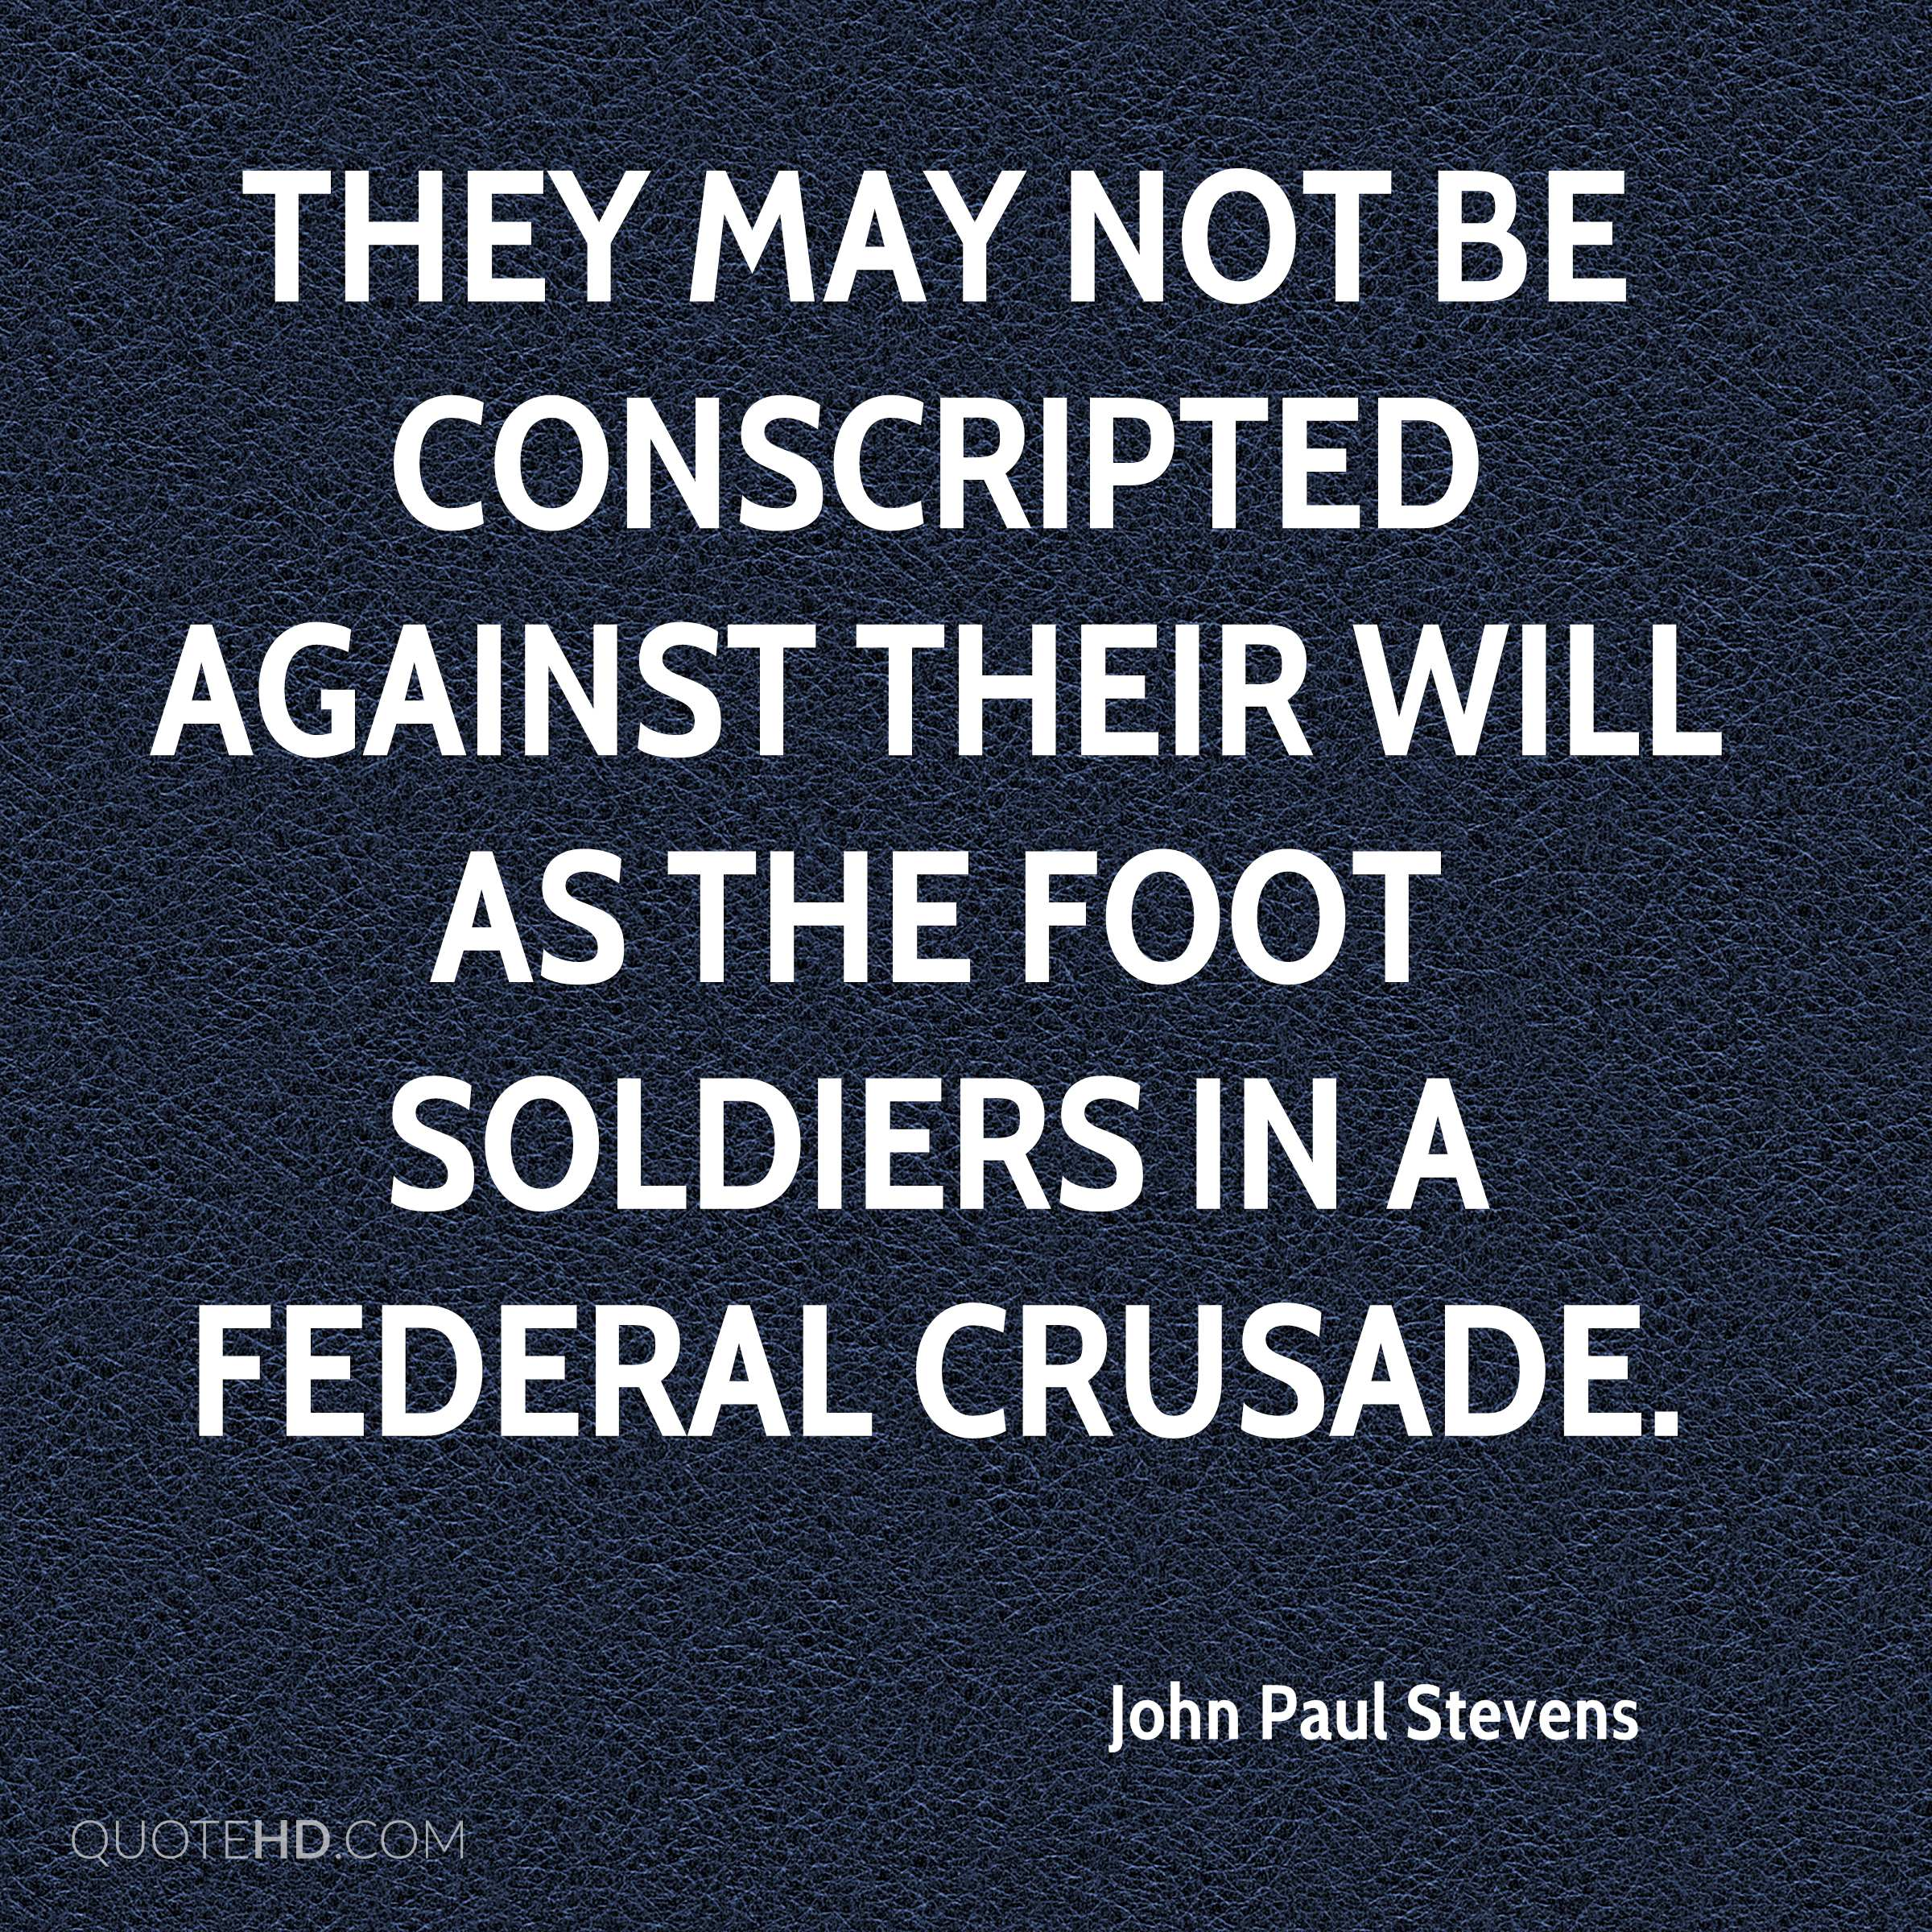 They may not be conscripted against their will as the foot soldiers in a federal crusade.